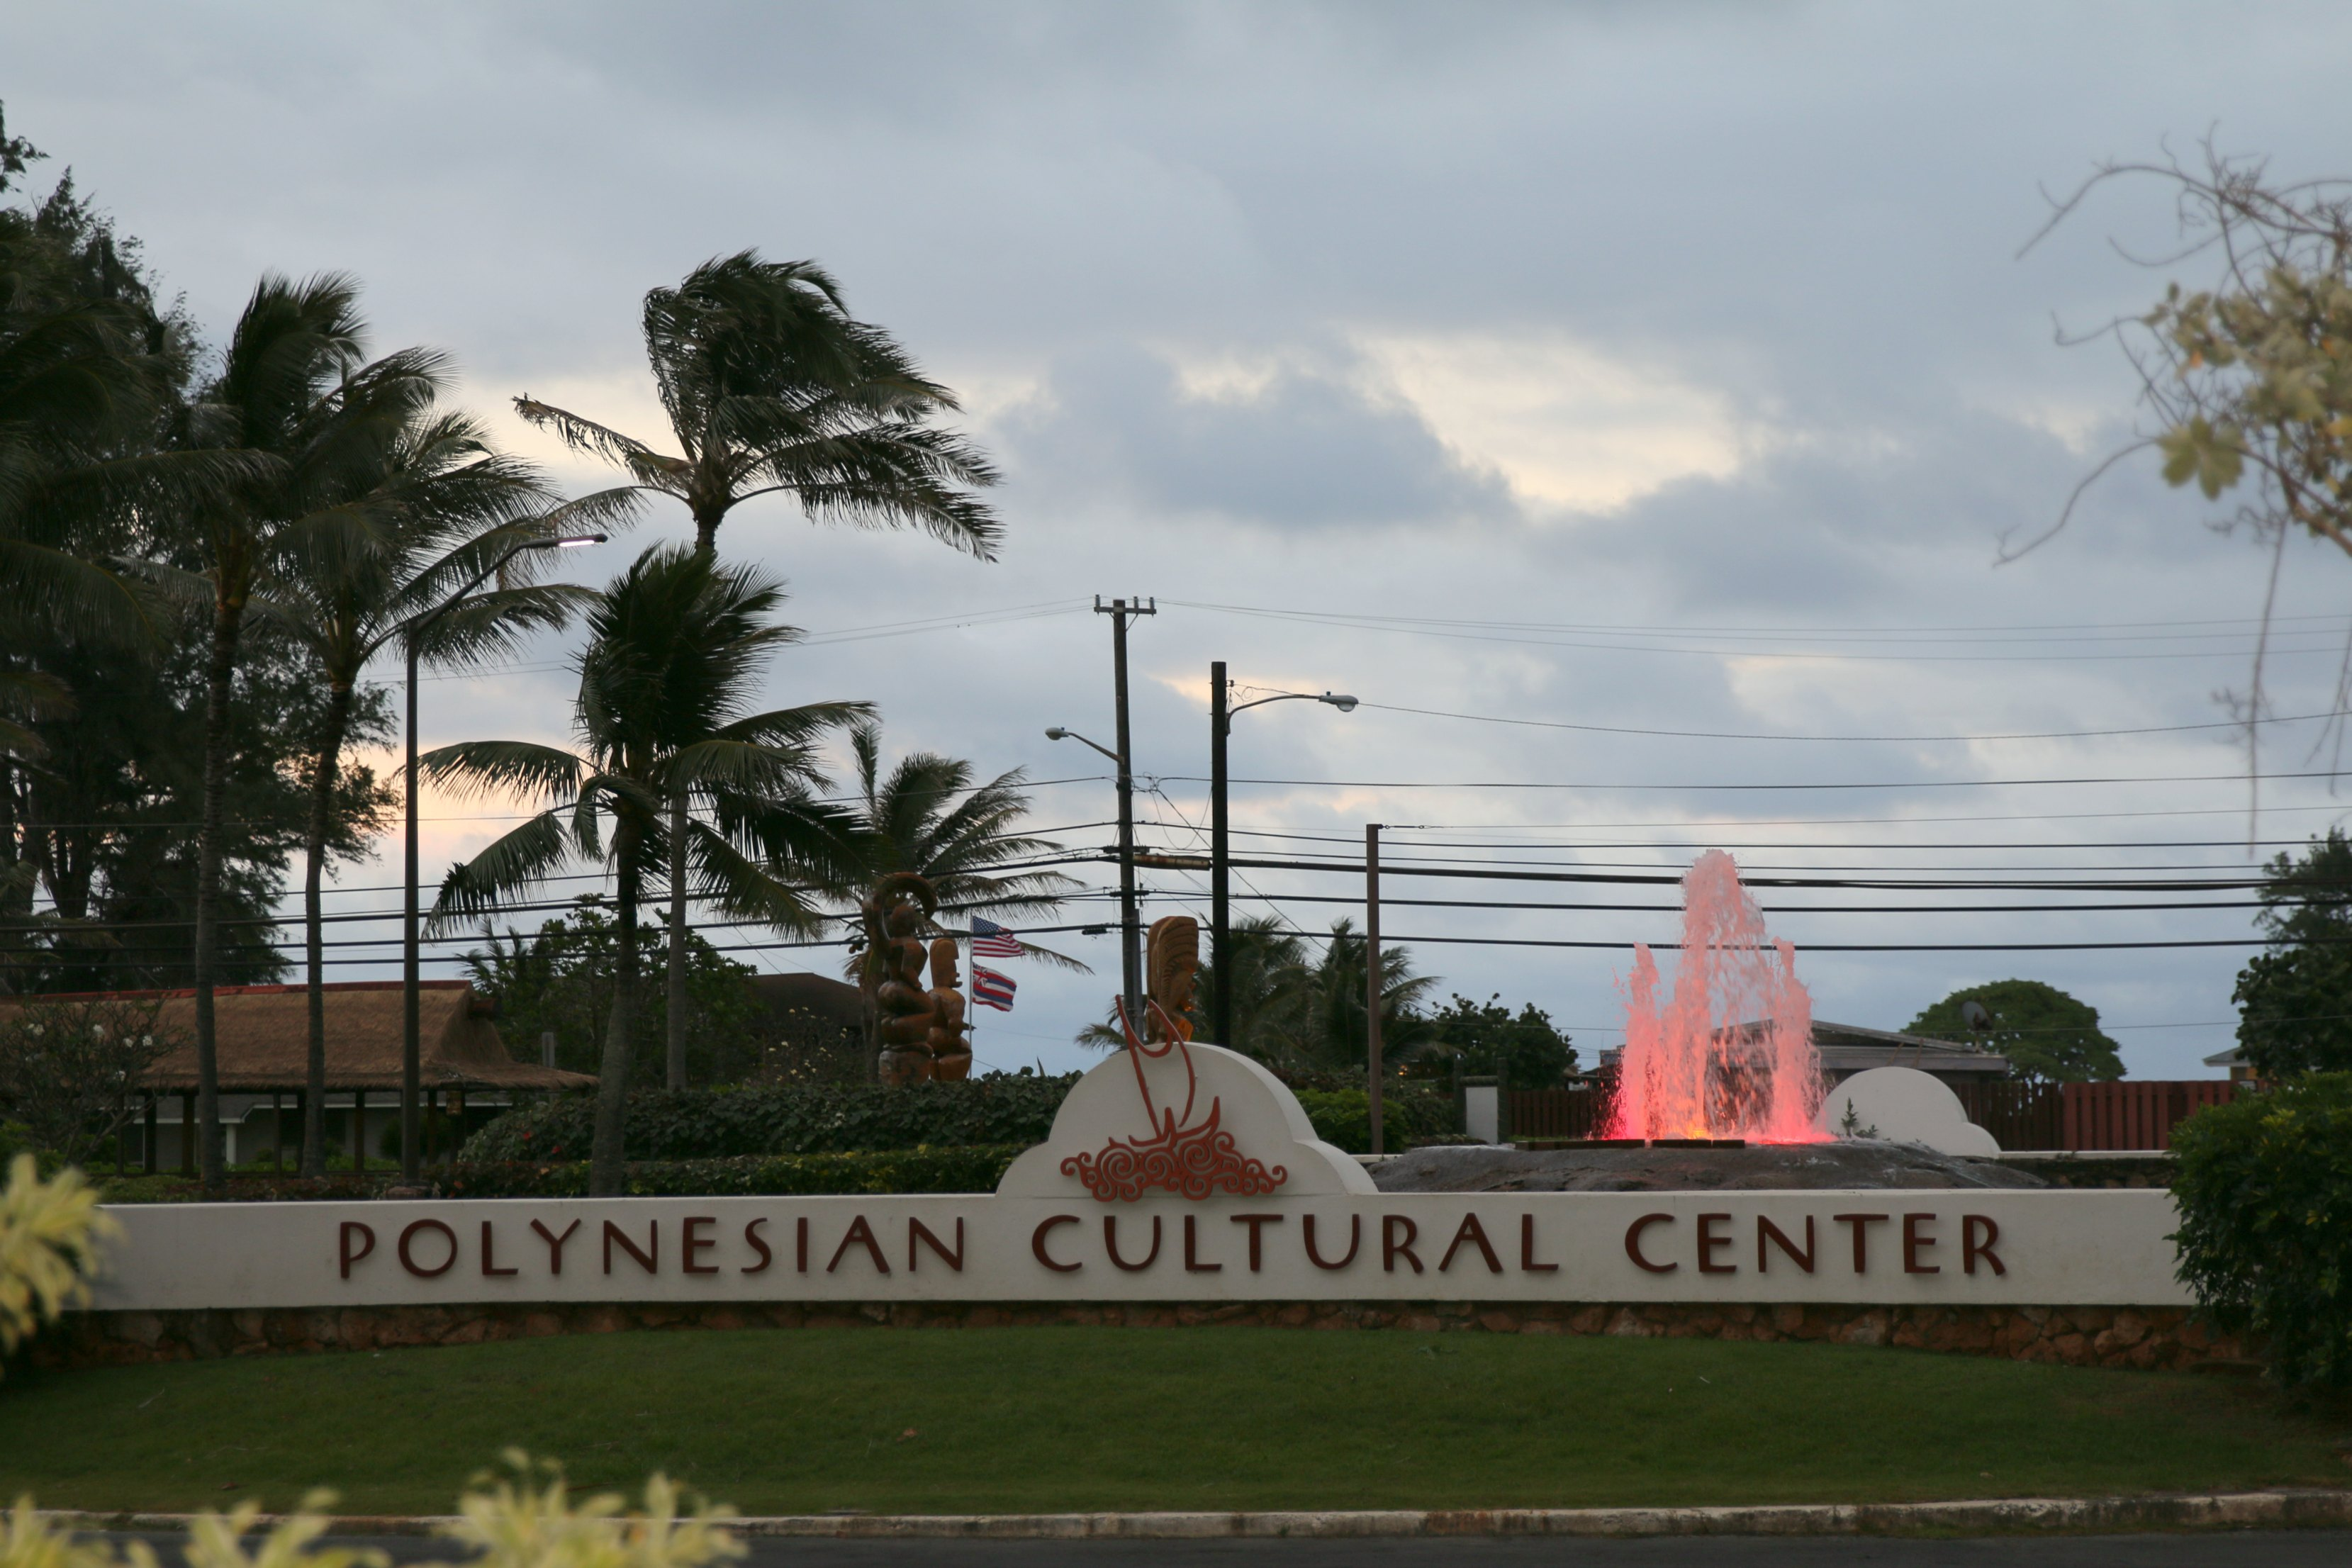 what to do at the Polynesian cultural center with kids